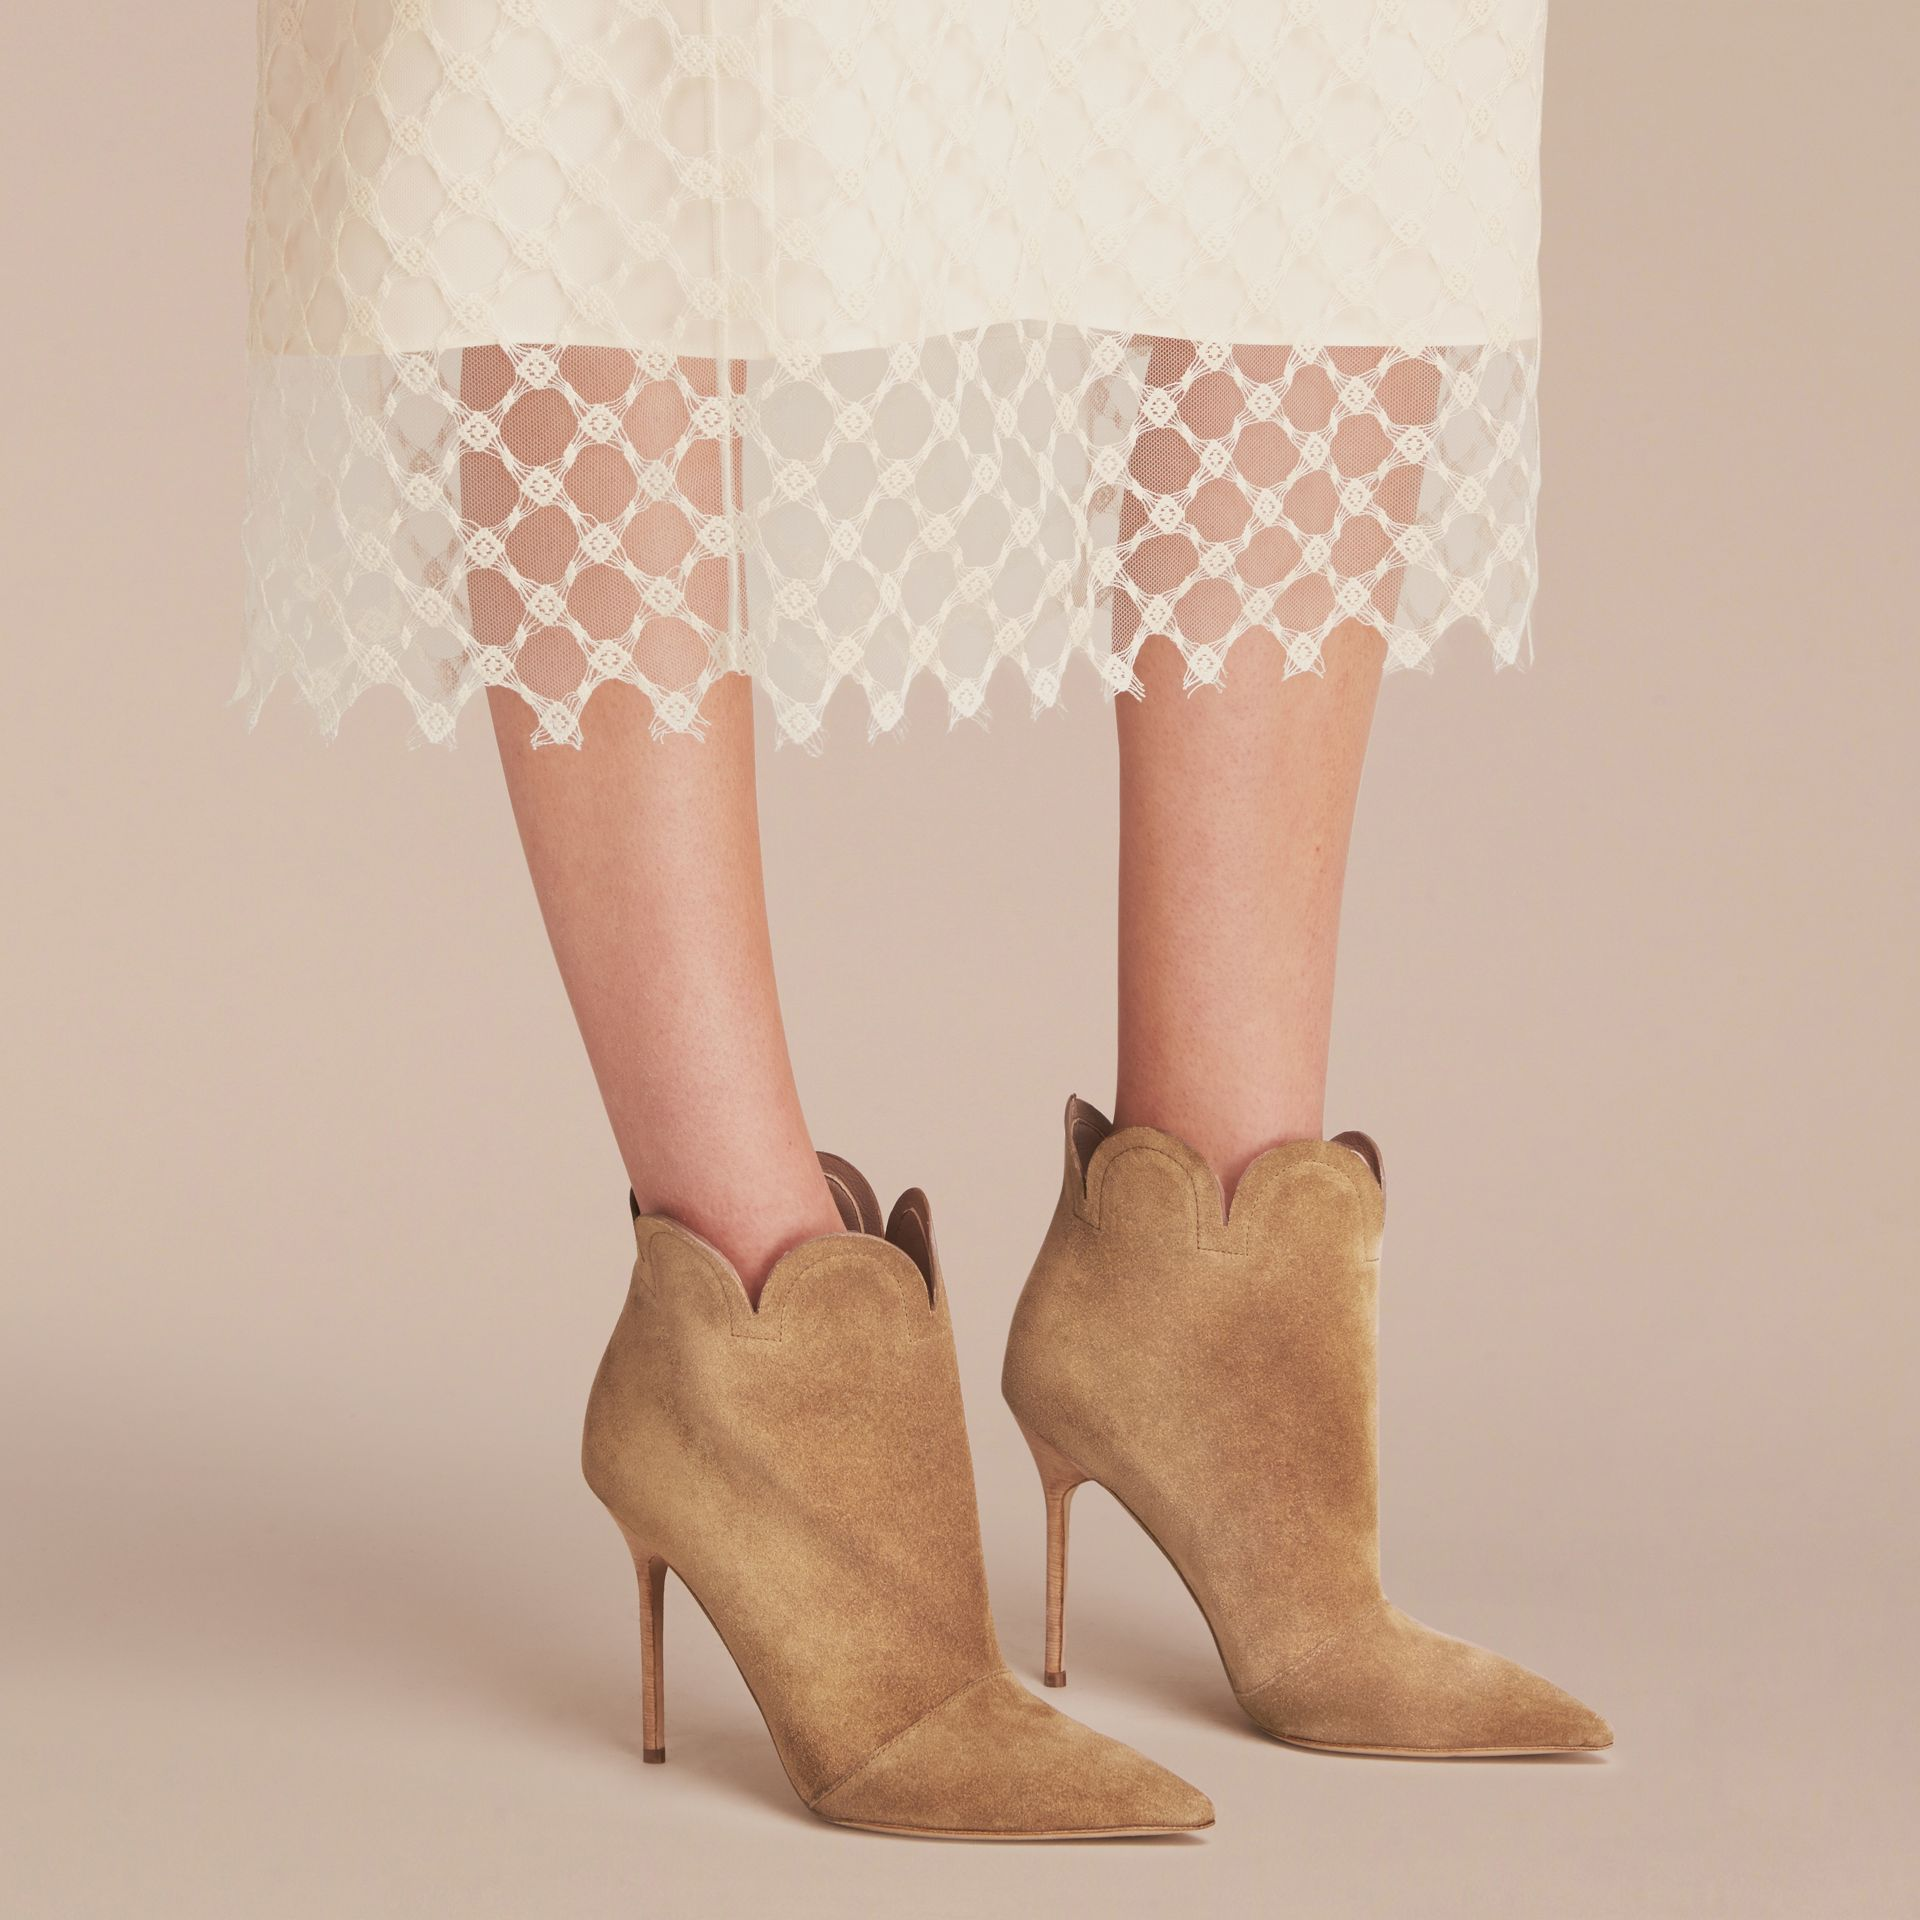 Scalloped Suede Ankle Boots in Sandstone - Women | Burberry Hong Kong - gallery image 3